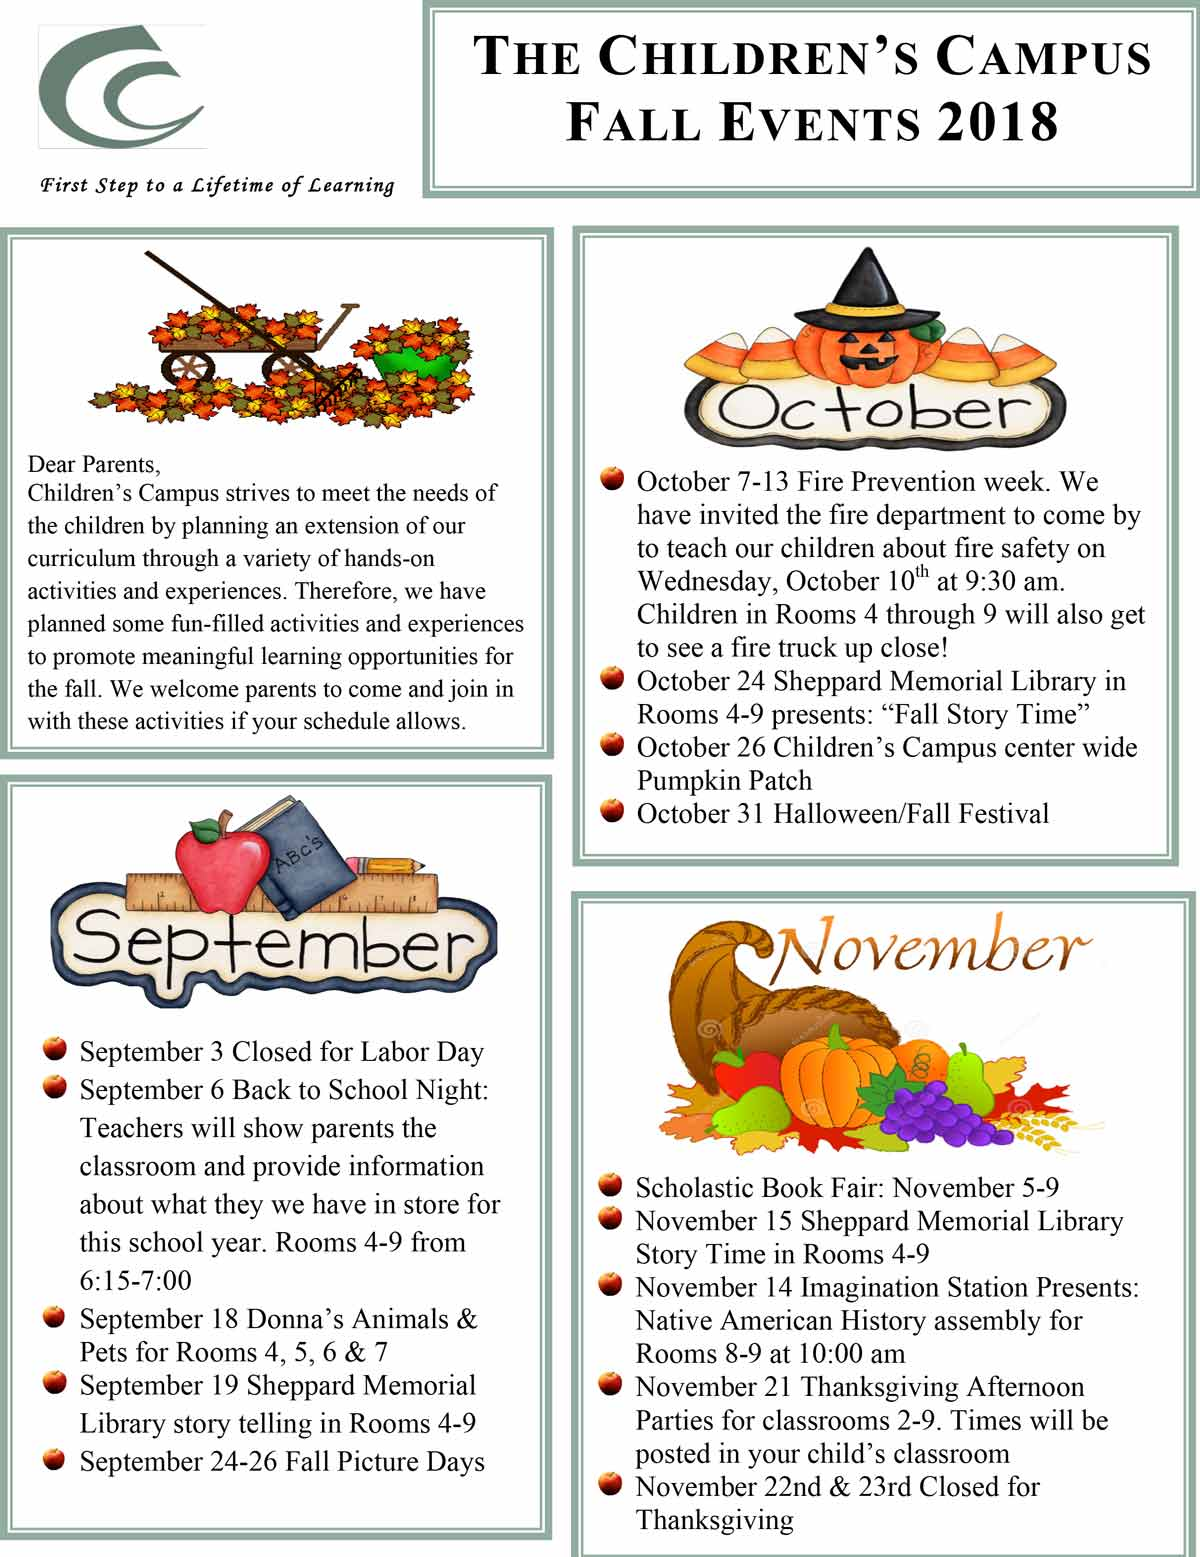 Greenville Nc Halloween Events